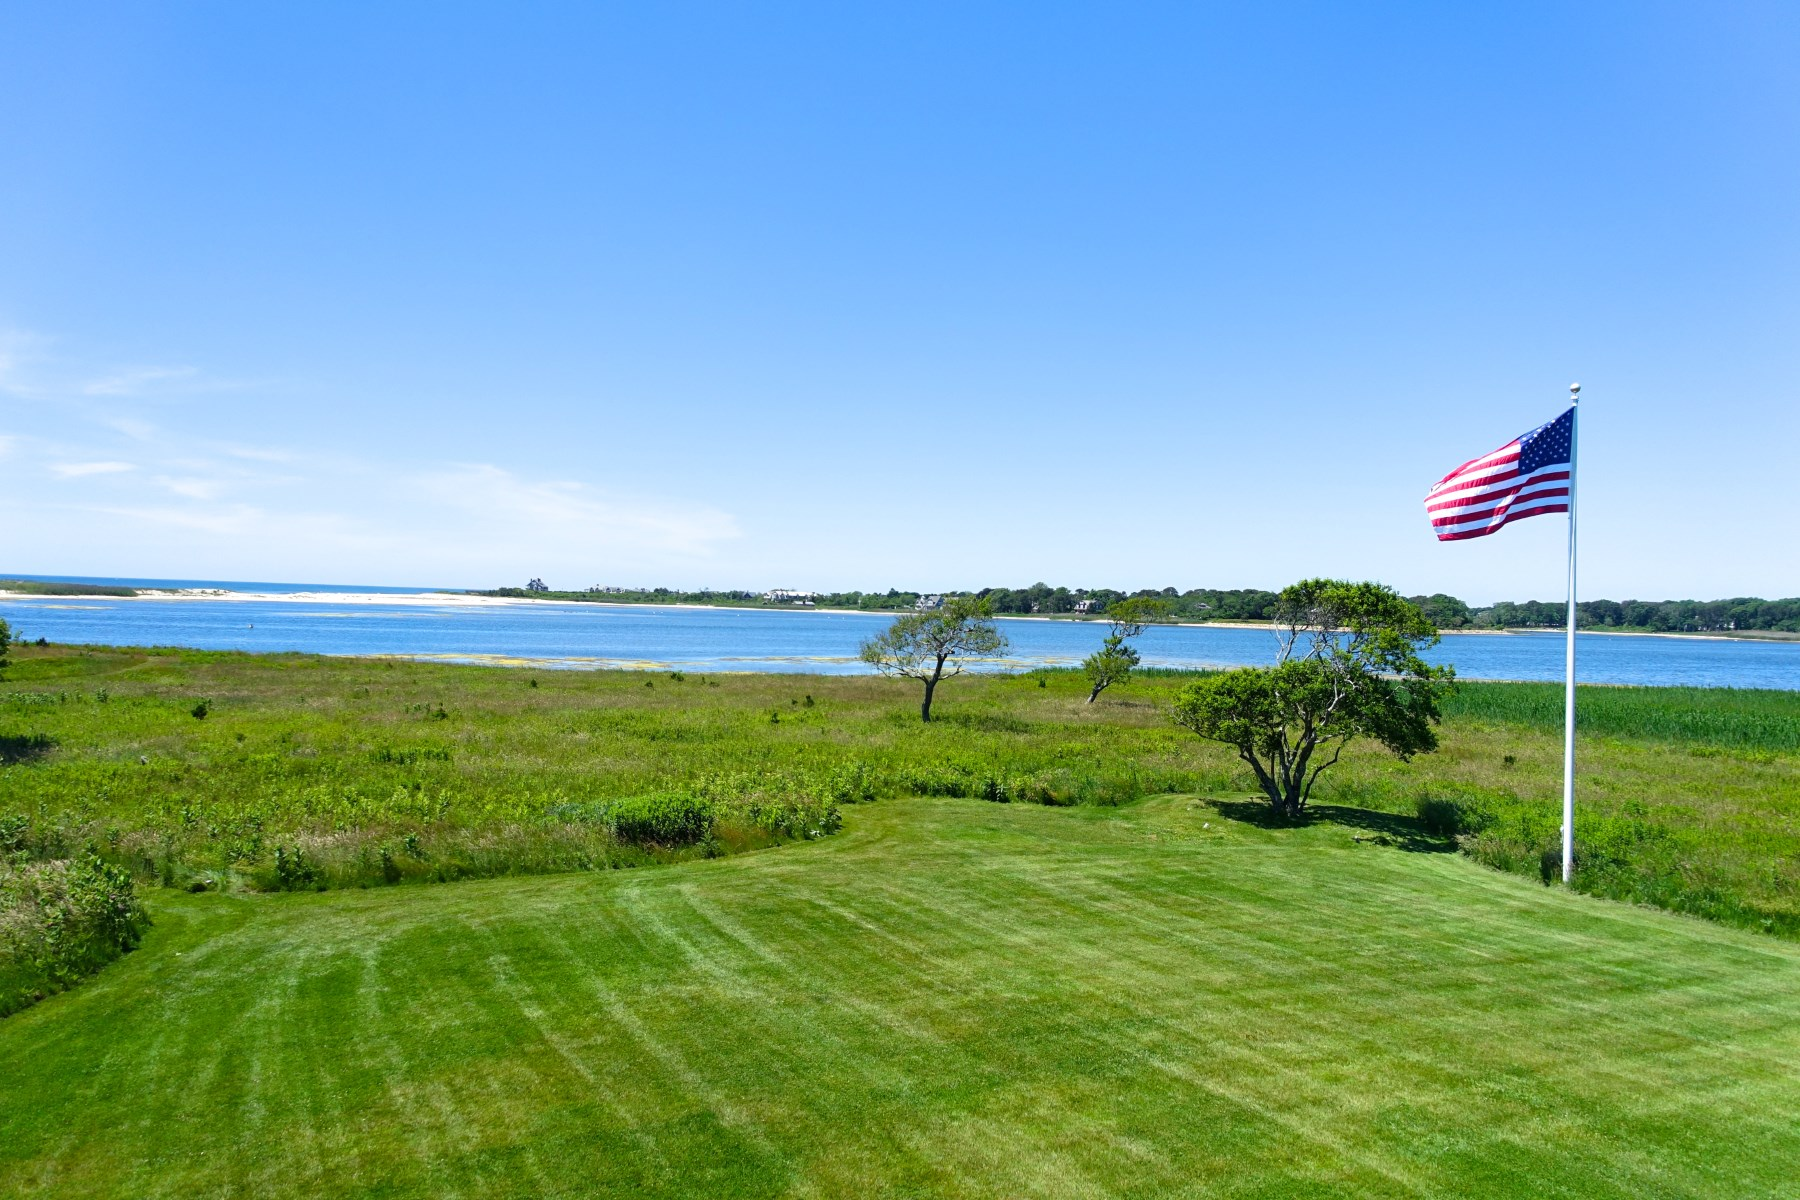 Villa per Vendita alle ore 7.1 Acres On Prestigious Pond 19 & 23 Chauncey Close East Hampton Village, East Hampton, New York, 11937 Stati Uniti